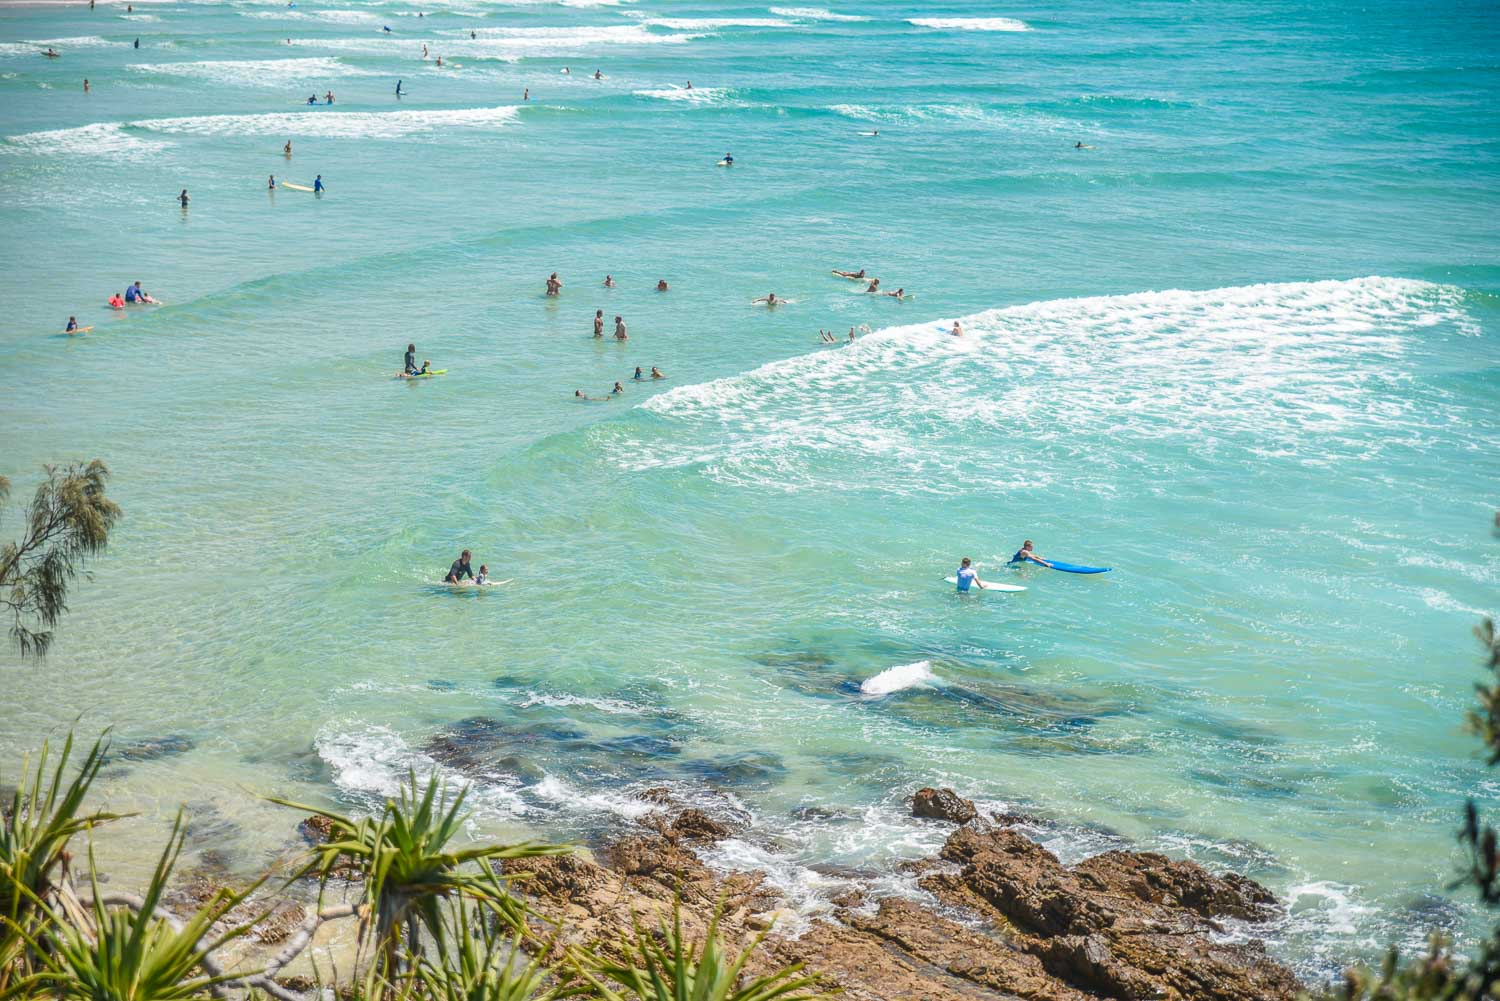 Byron Bay Surfing - Things To Do in Byron Bay